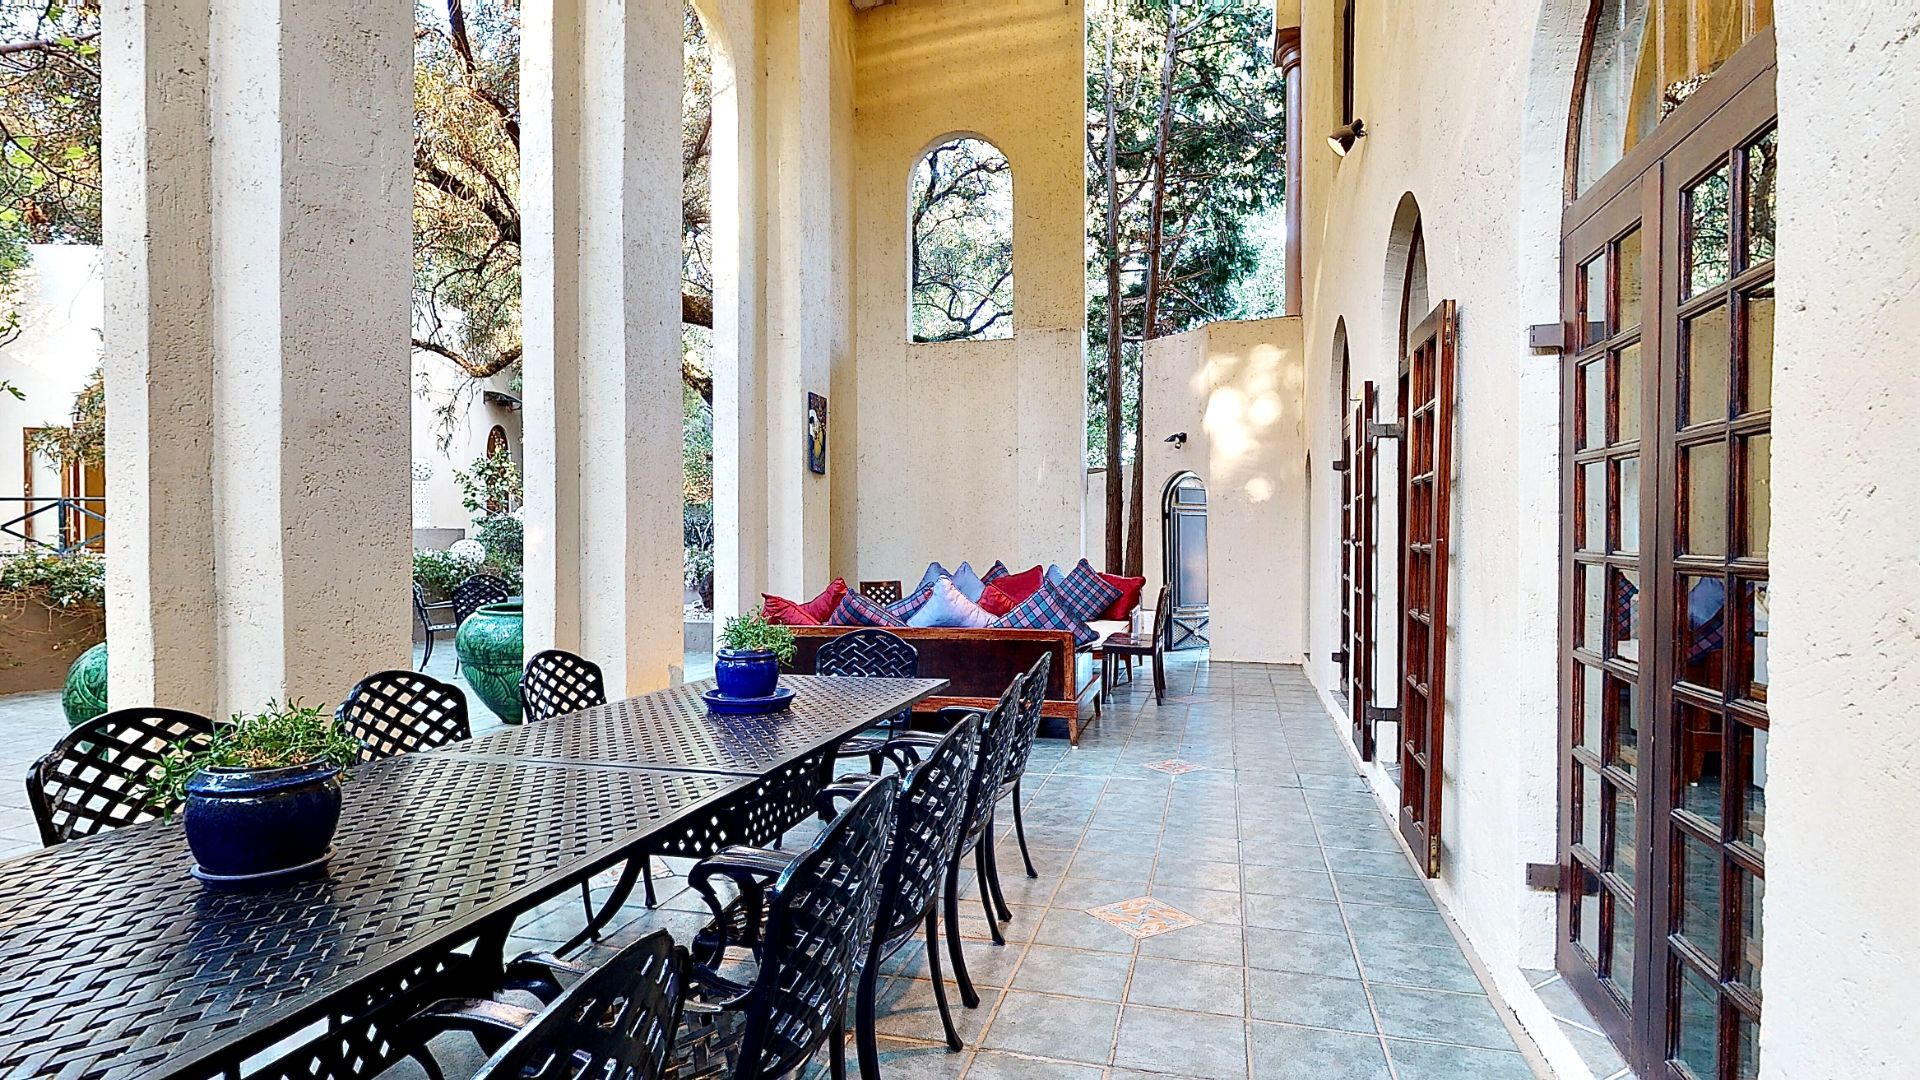 4Not-Just-a-14-Bedroom-Home-for-sale-in-Bryanston-it-is-much-more-09162021_192001.jpg